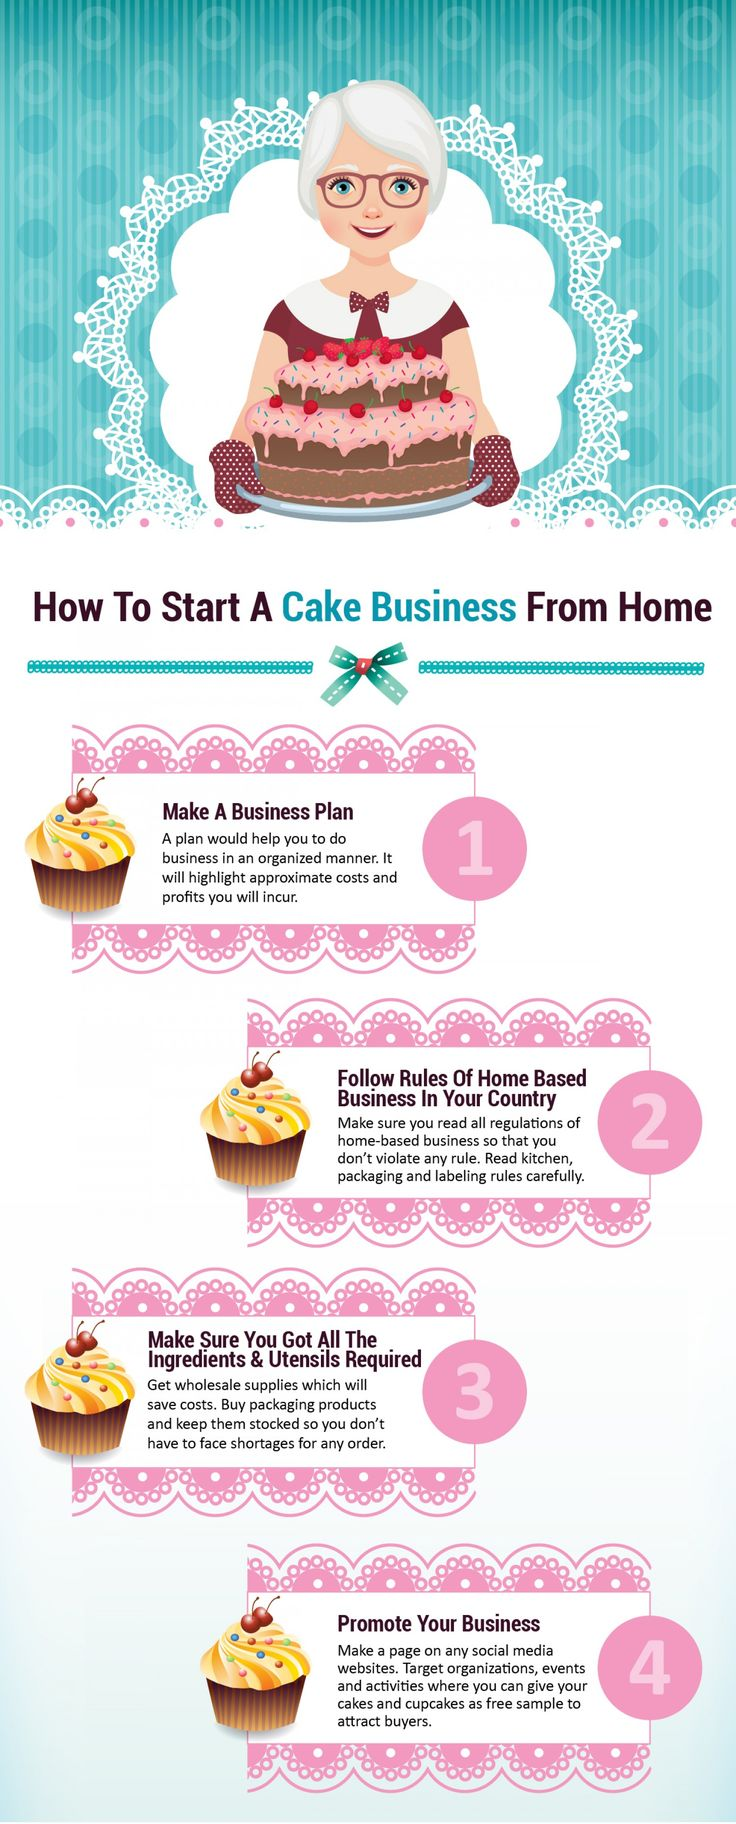 31 Catchy and Cute Cake and Cupcake Business Names | Biz Junky                                                                                                                                                                                 More